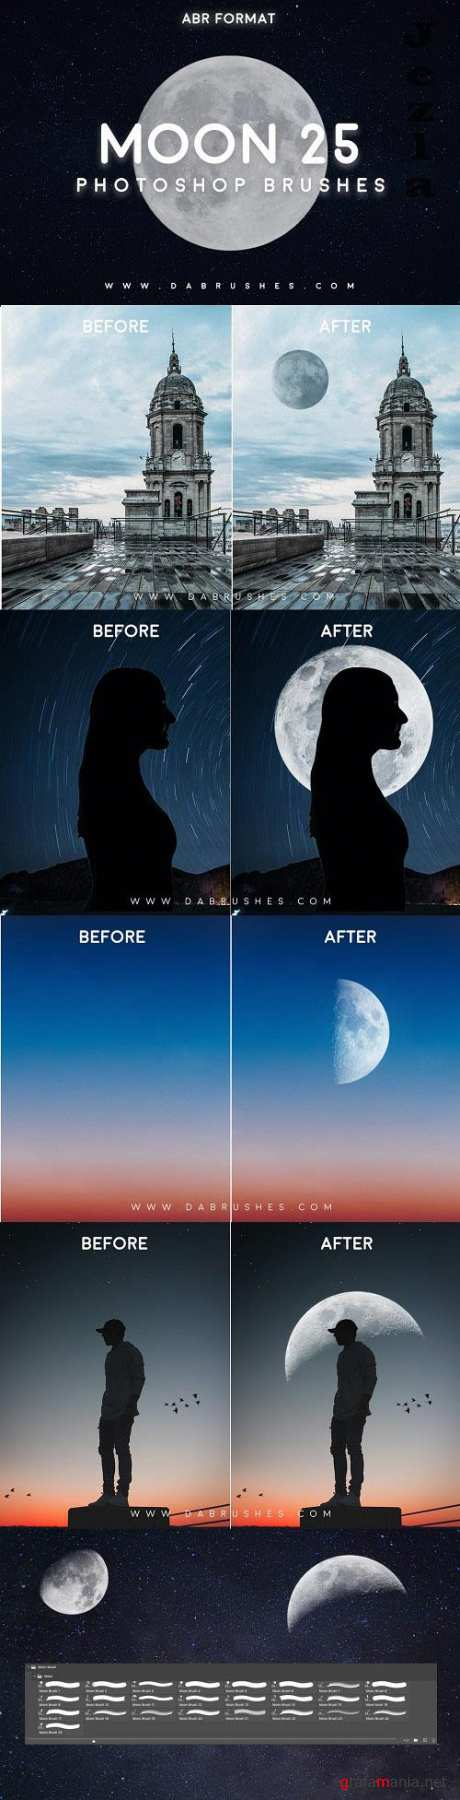 25 Moon Brushes For Photoshop - 6036825